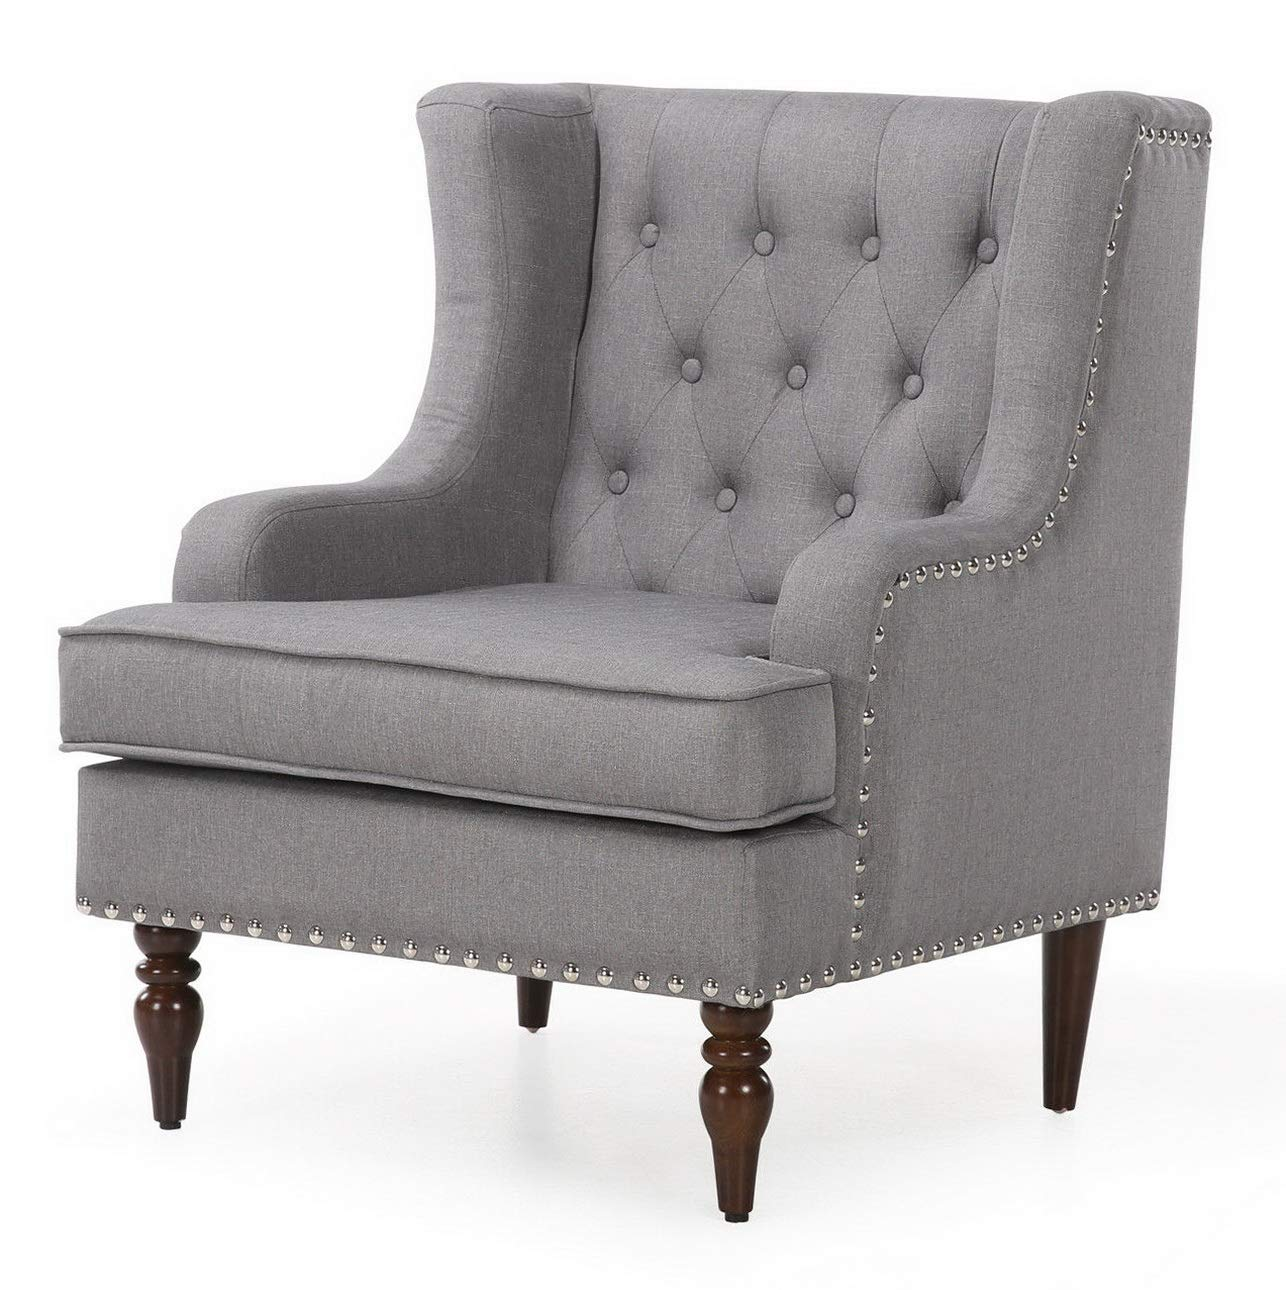 Amazon.com: Hebel Upholstered Elegant Classic Stylish Button Tufted Accent Chair w/Nail Head Trim | Model CCNTCHR - 447 |: Kitchen & Dining